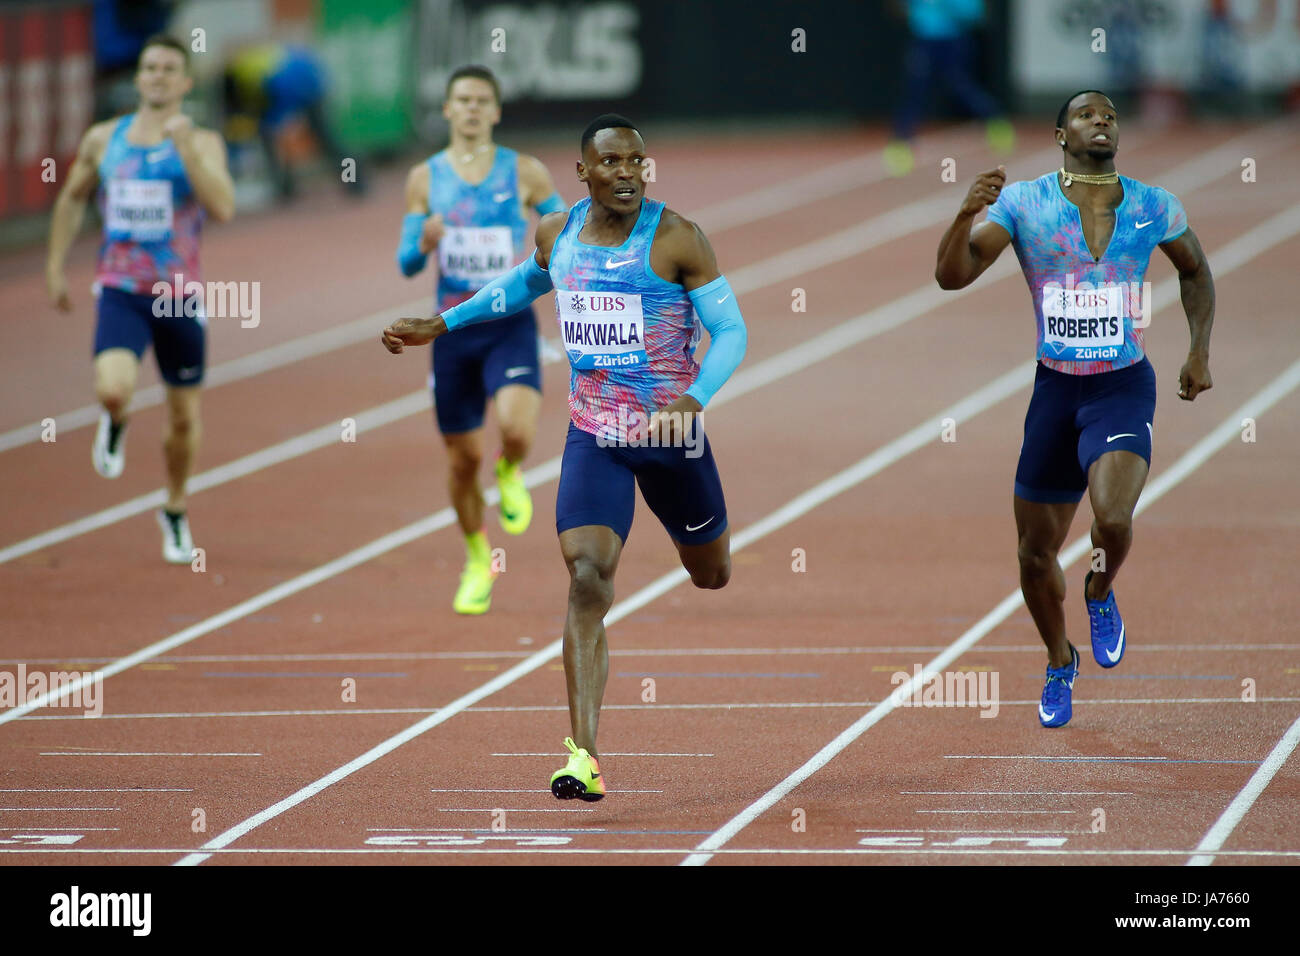 Zurich, Switzerland. 24th Aug, 2017. Isaac Makwala (2nd R) of Botswana competes during the men's 400m final - Stock Image